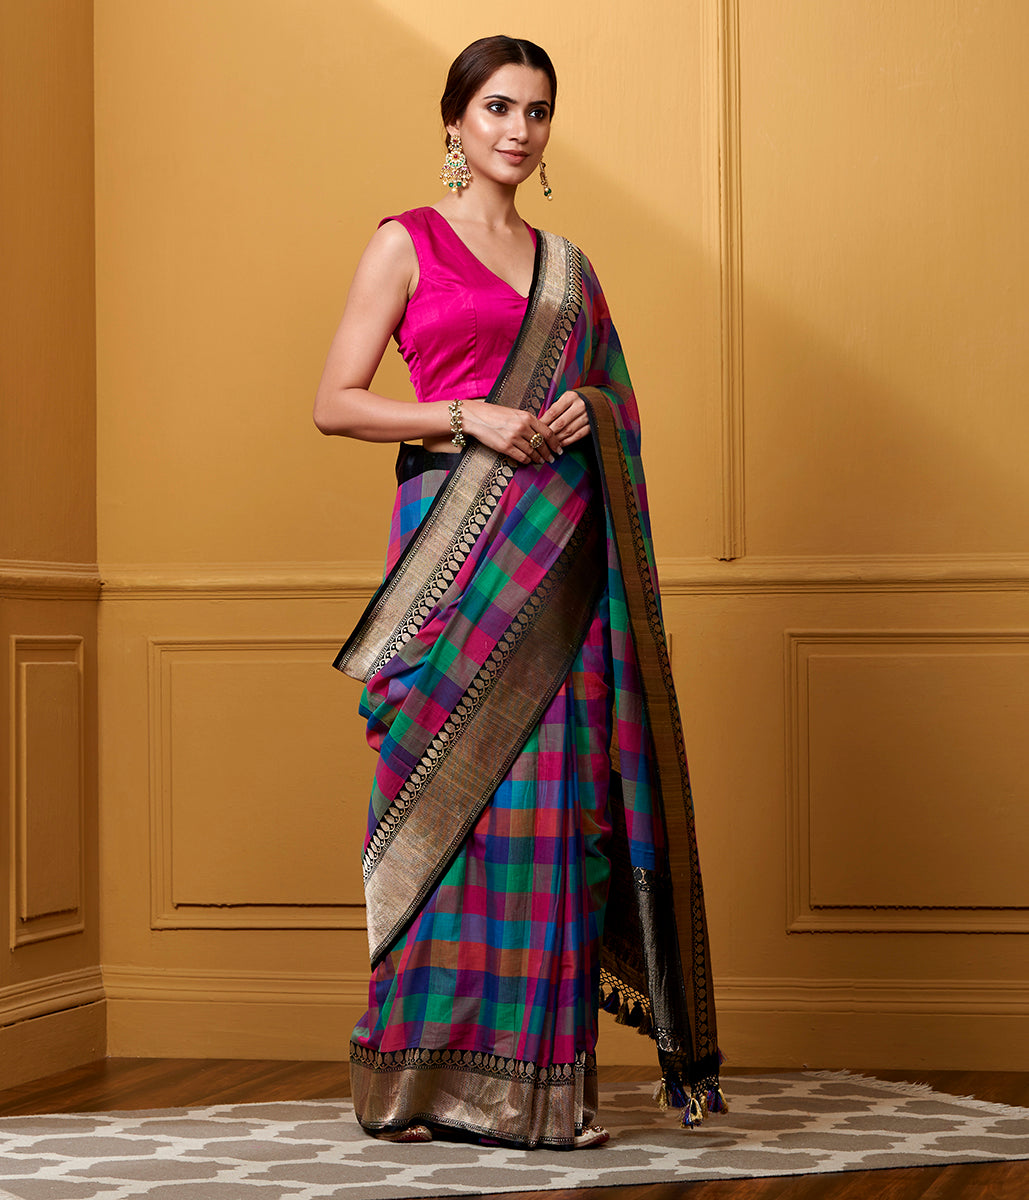 Handwoven Multicolor Cotton Checks with antique zari border